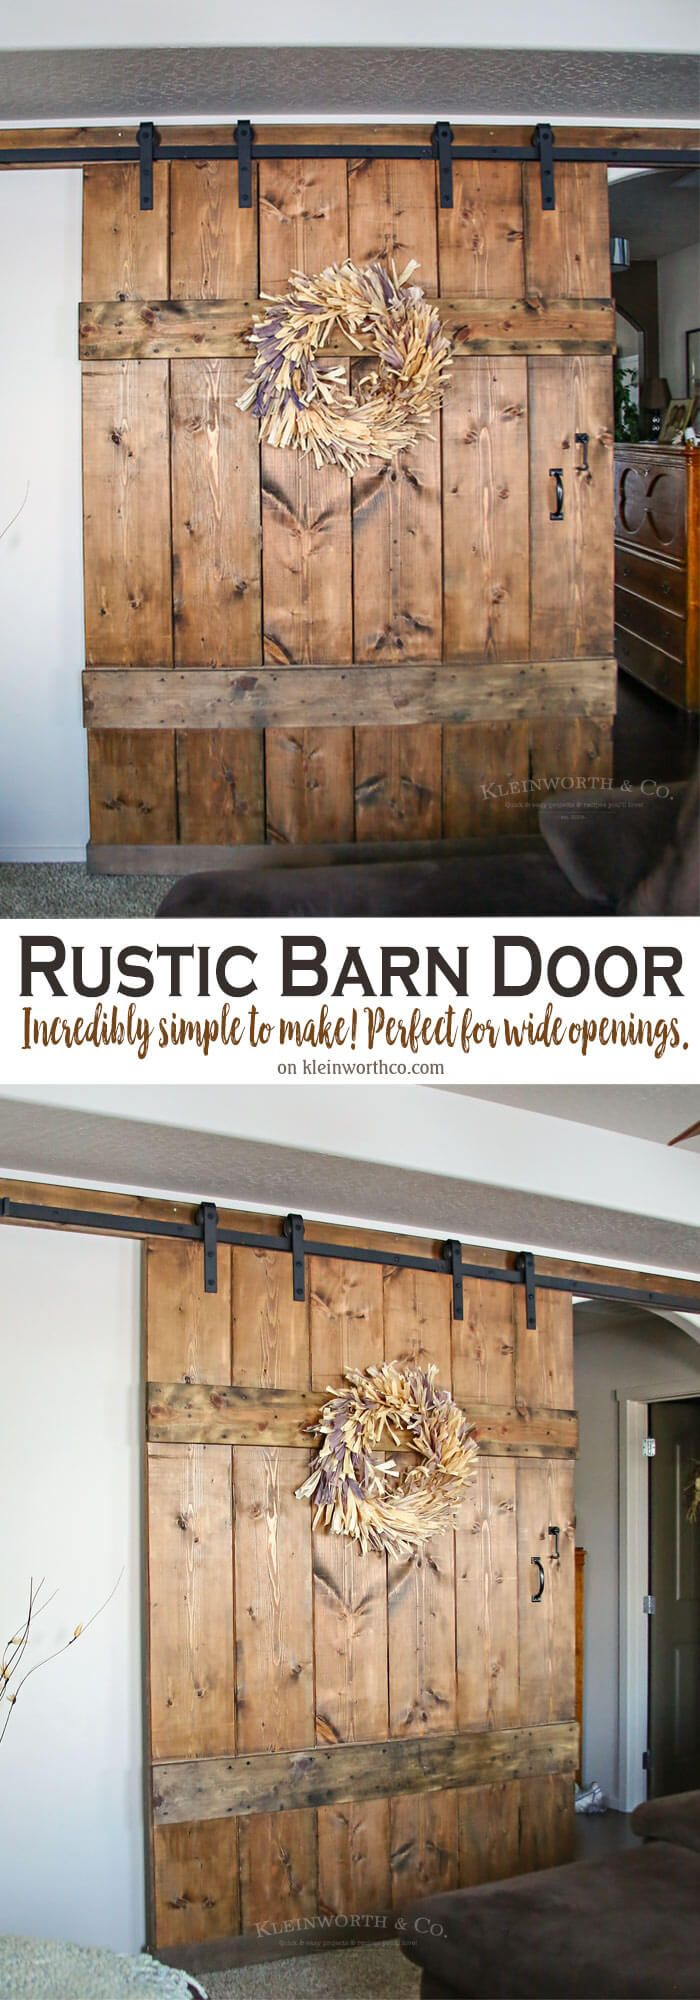 This Wide Rustic Barn Door is 6 feet wide & made for extra large doorways. It's incredibly simple to make & adds functionality & rustic charm to your home.